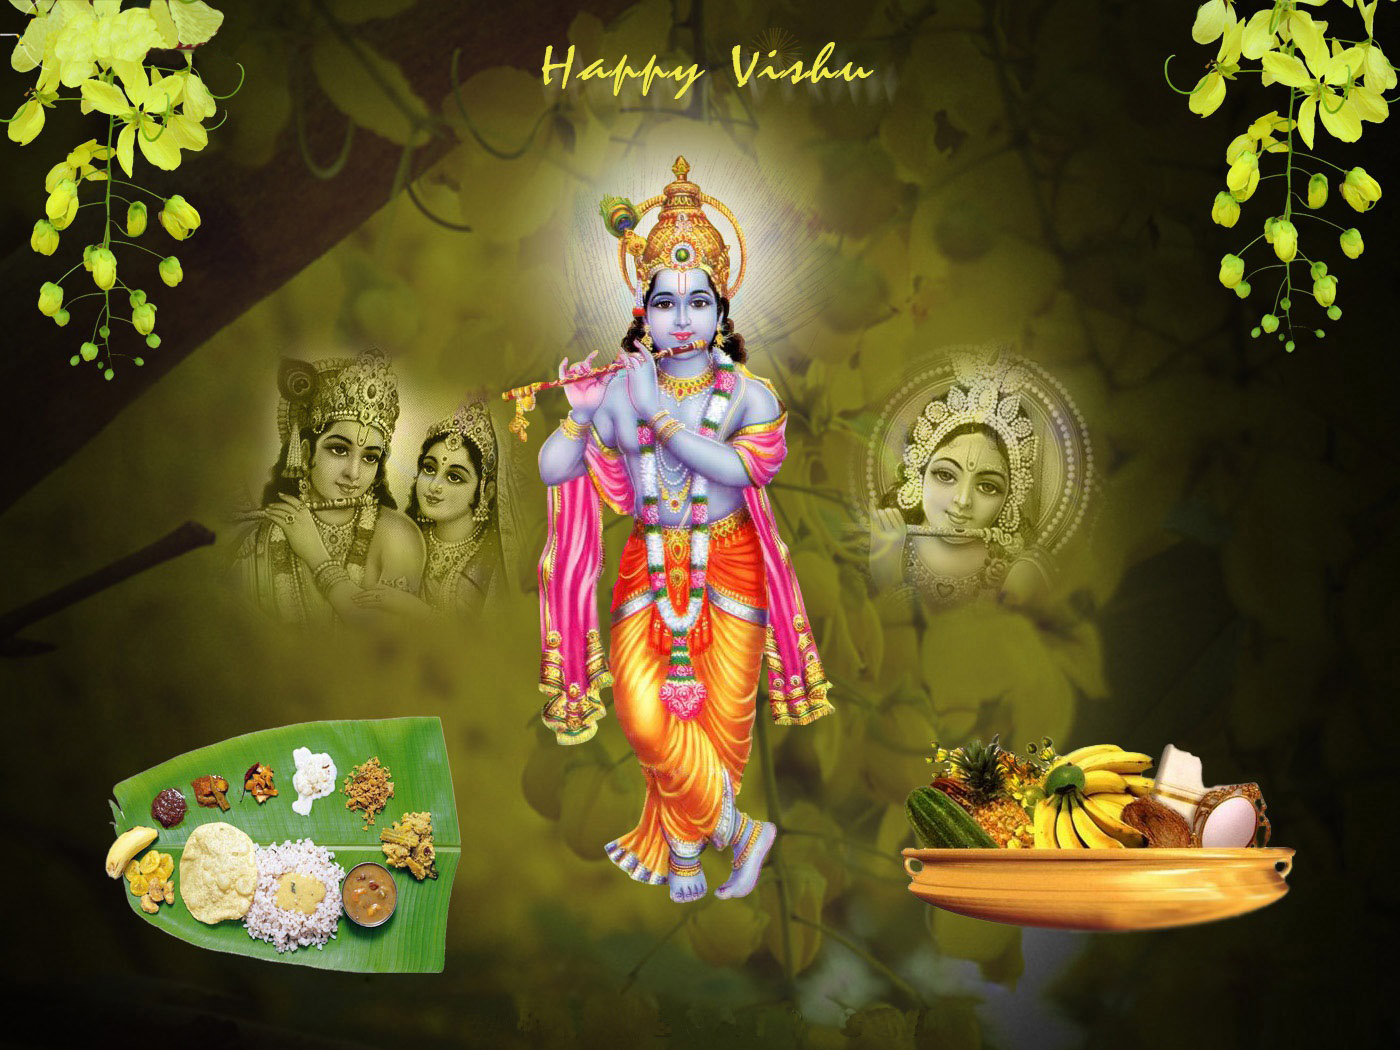 Happy+Vishu+2013+HD+Pics+Wallpaper+-+24.jpg